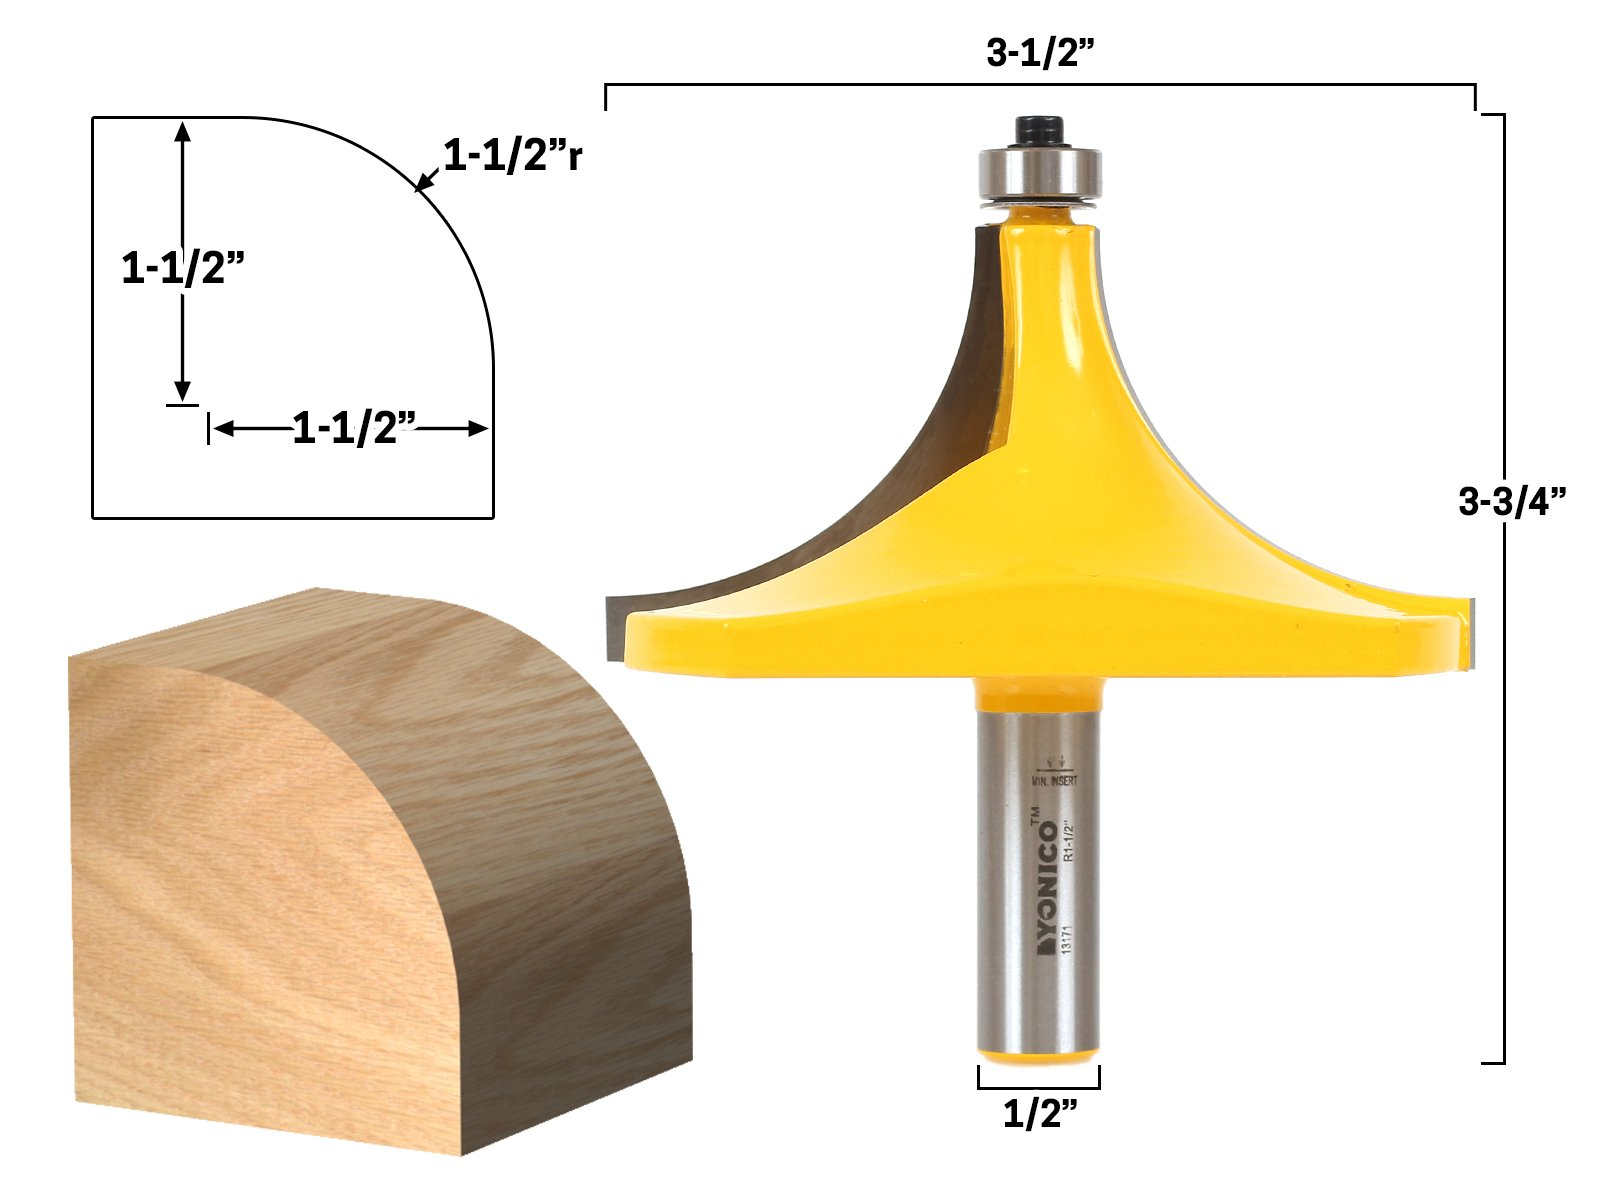 Yonico 13171 Yonico 13171 Round Over Edging Router Bit - 1-1/2'' Radius 1/2'' Shank, by Yonico (Image #2)